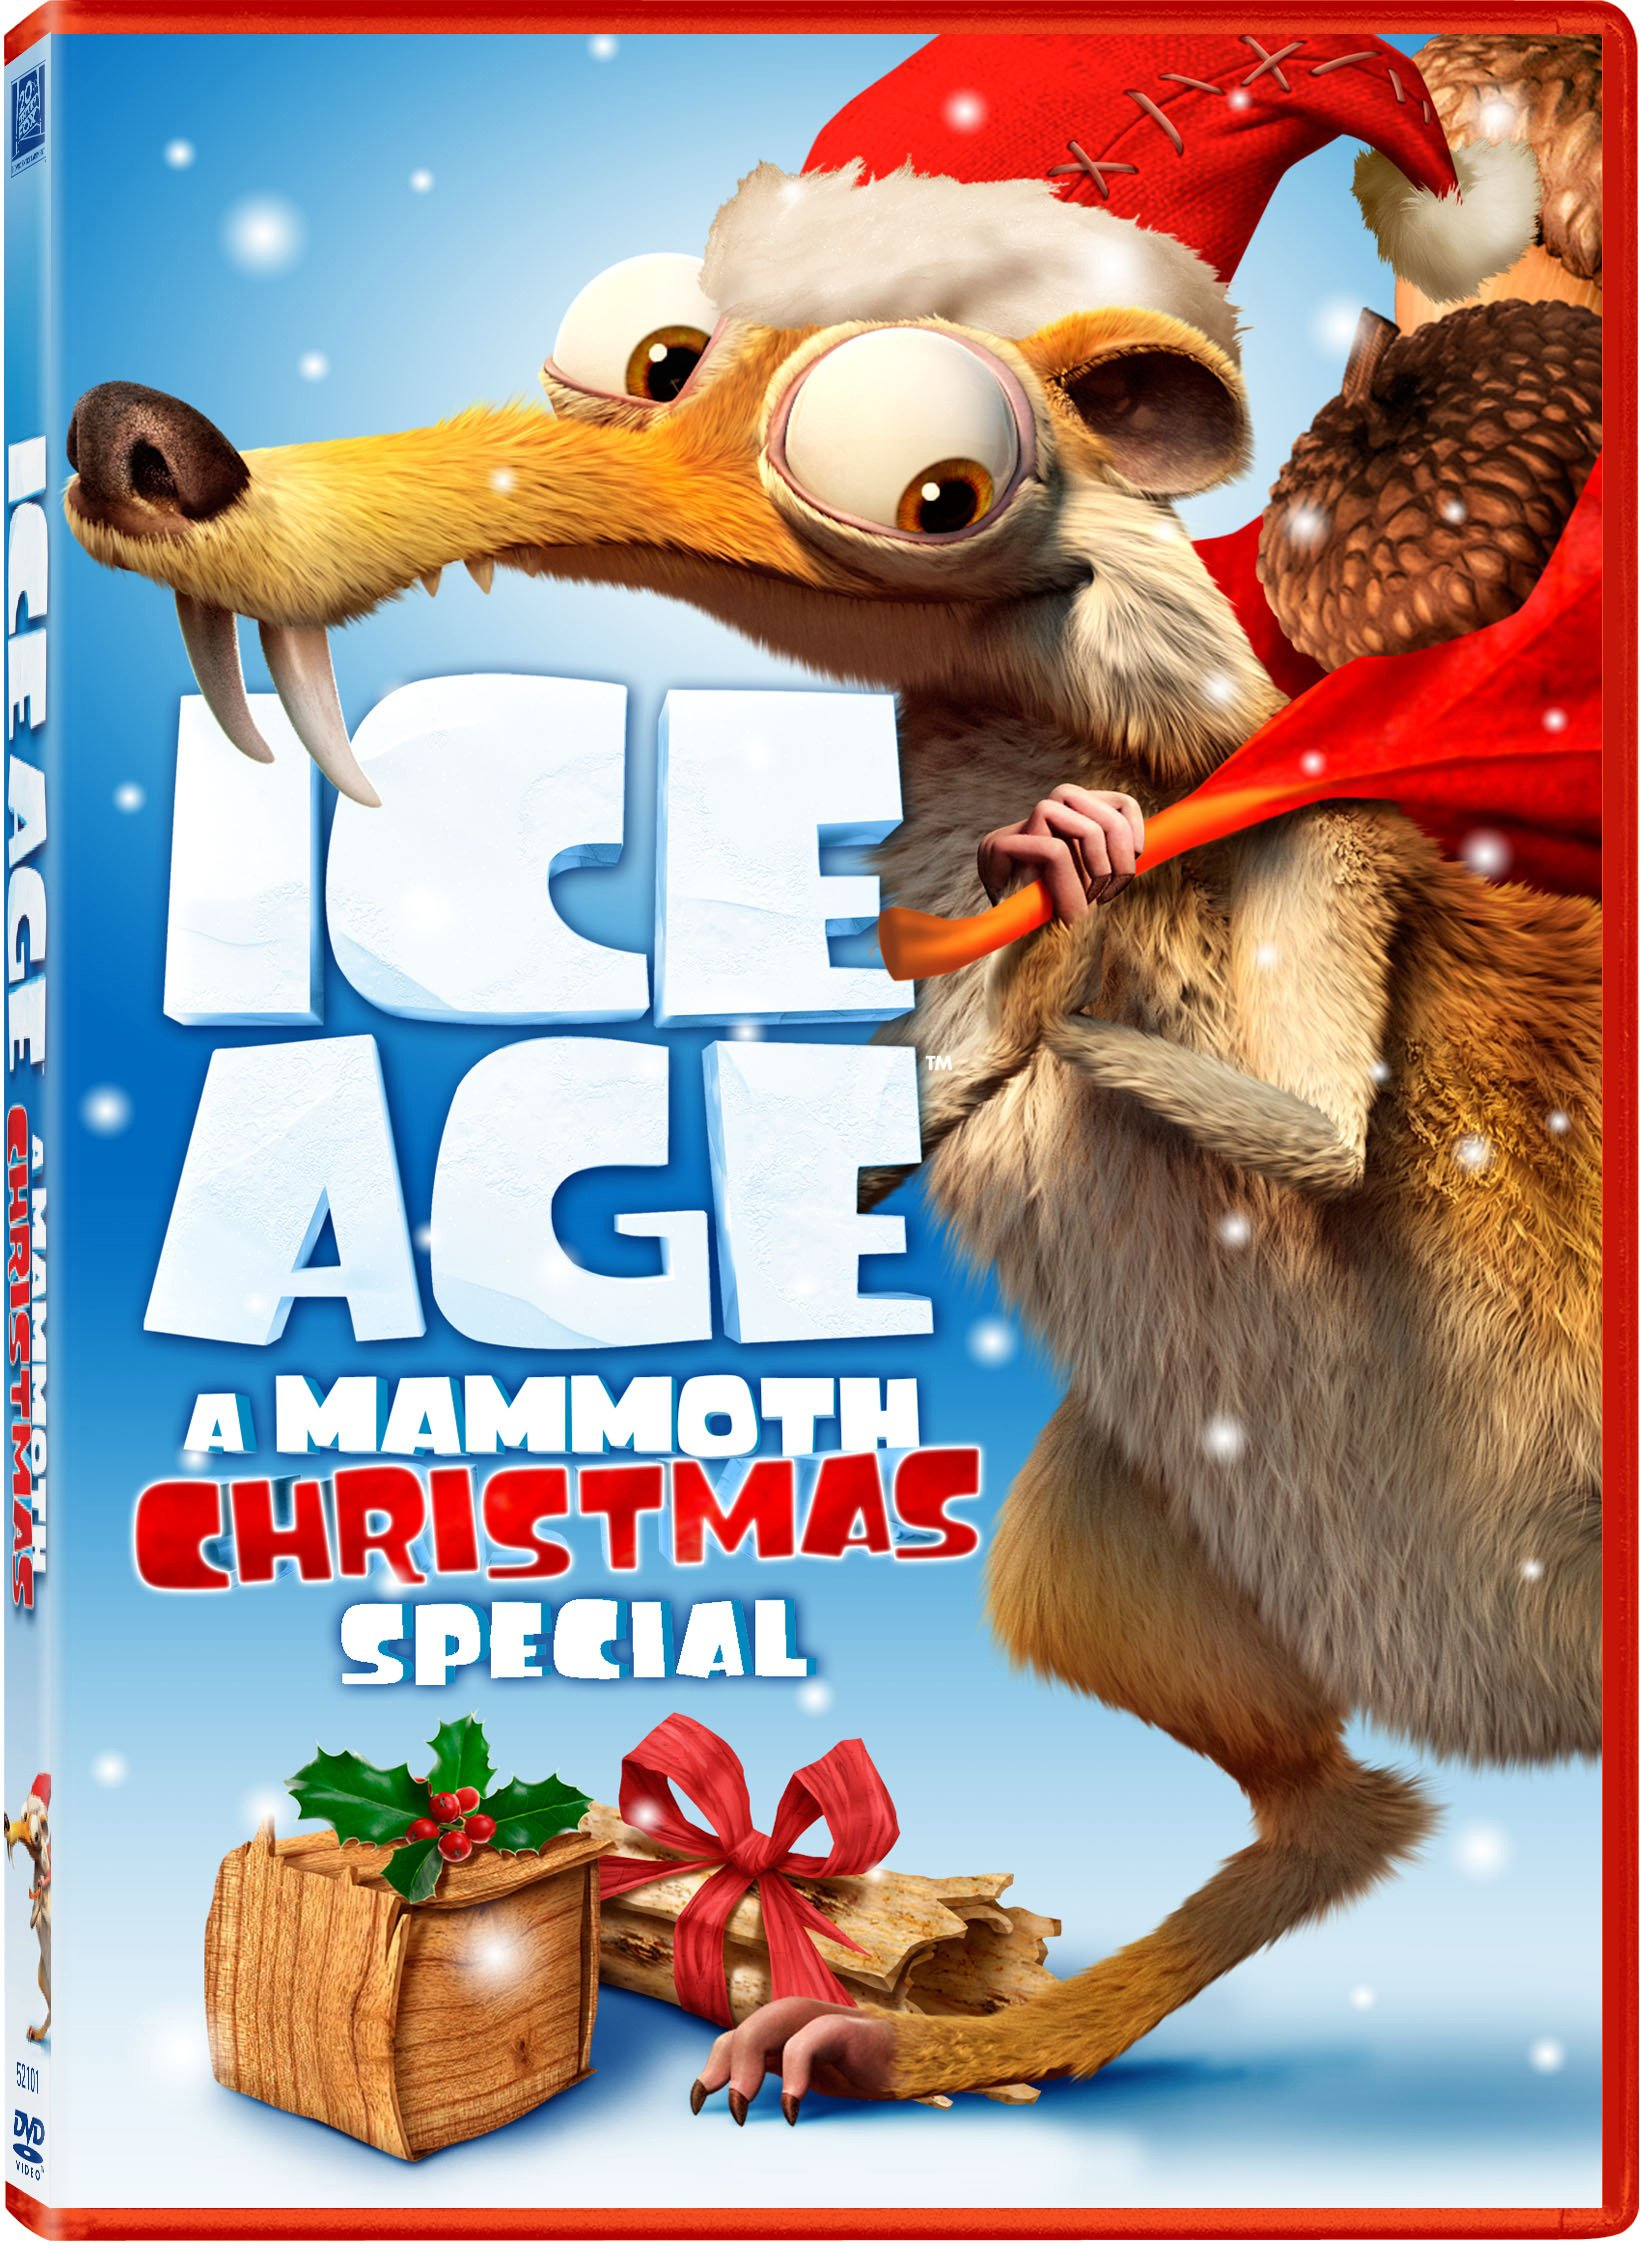 DVD : Ice Age: A Mammoth Christmas Special (Dolby, Dubbed, , Widescreen)